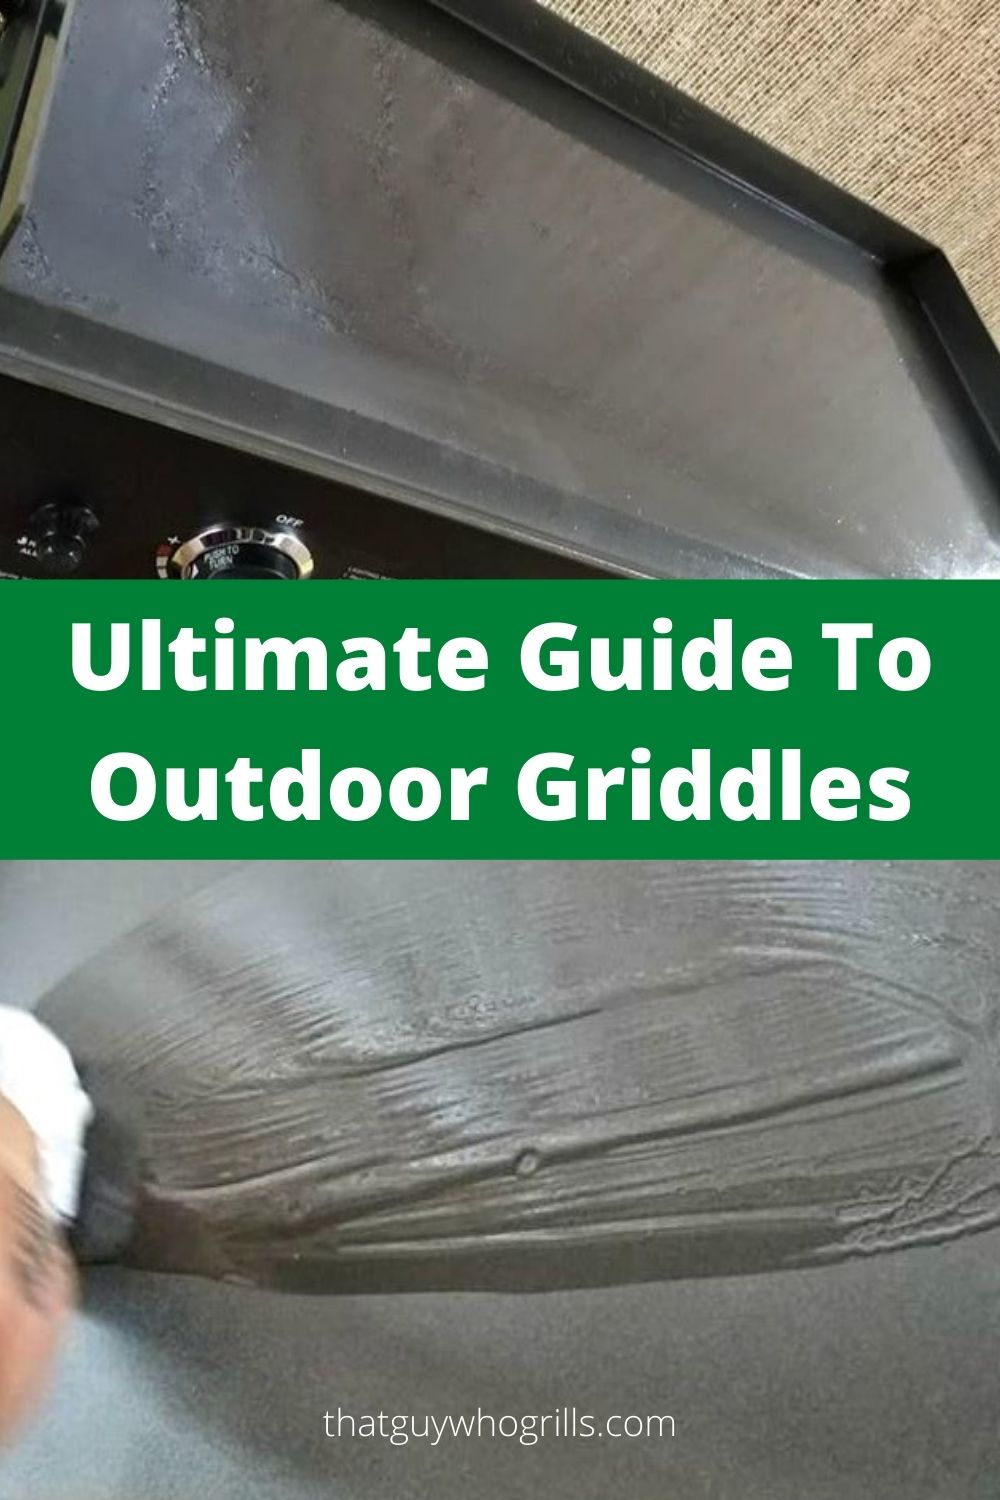 Ultimate Guide To Outdoor Griddles is the perfect way to get started with an outdoor griddle. Easy to care for and amazing food to eat as well.